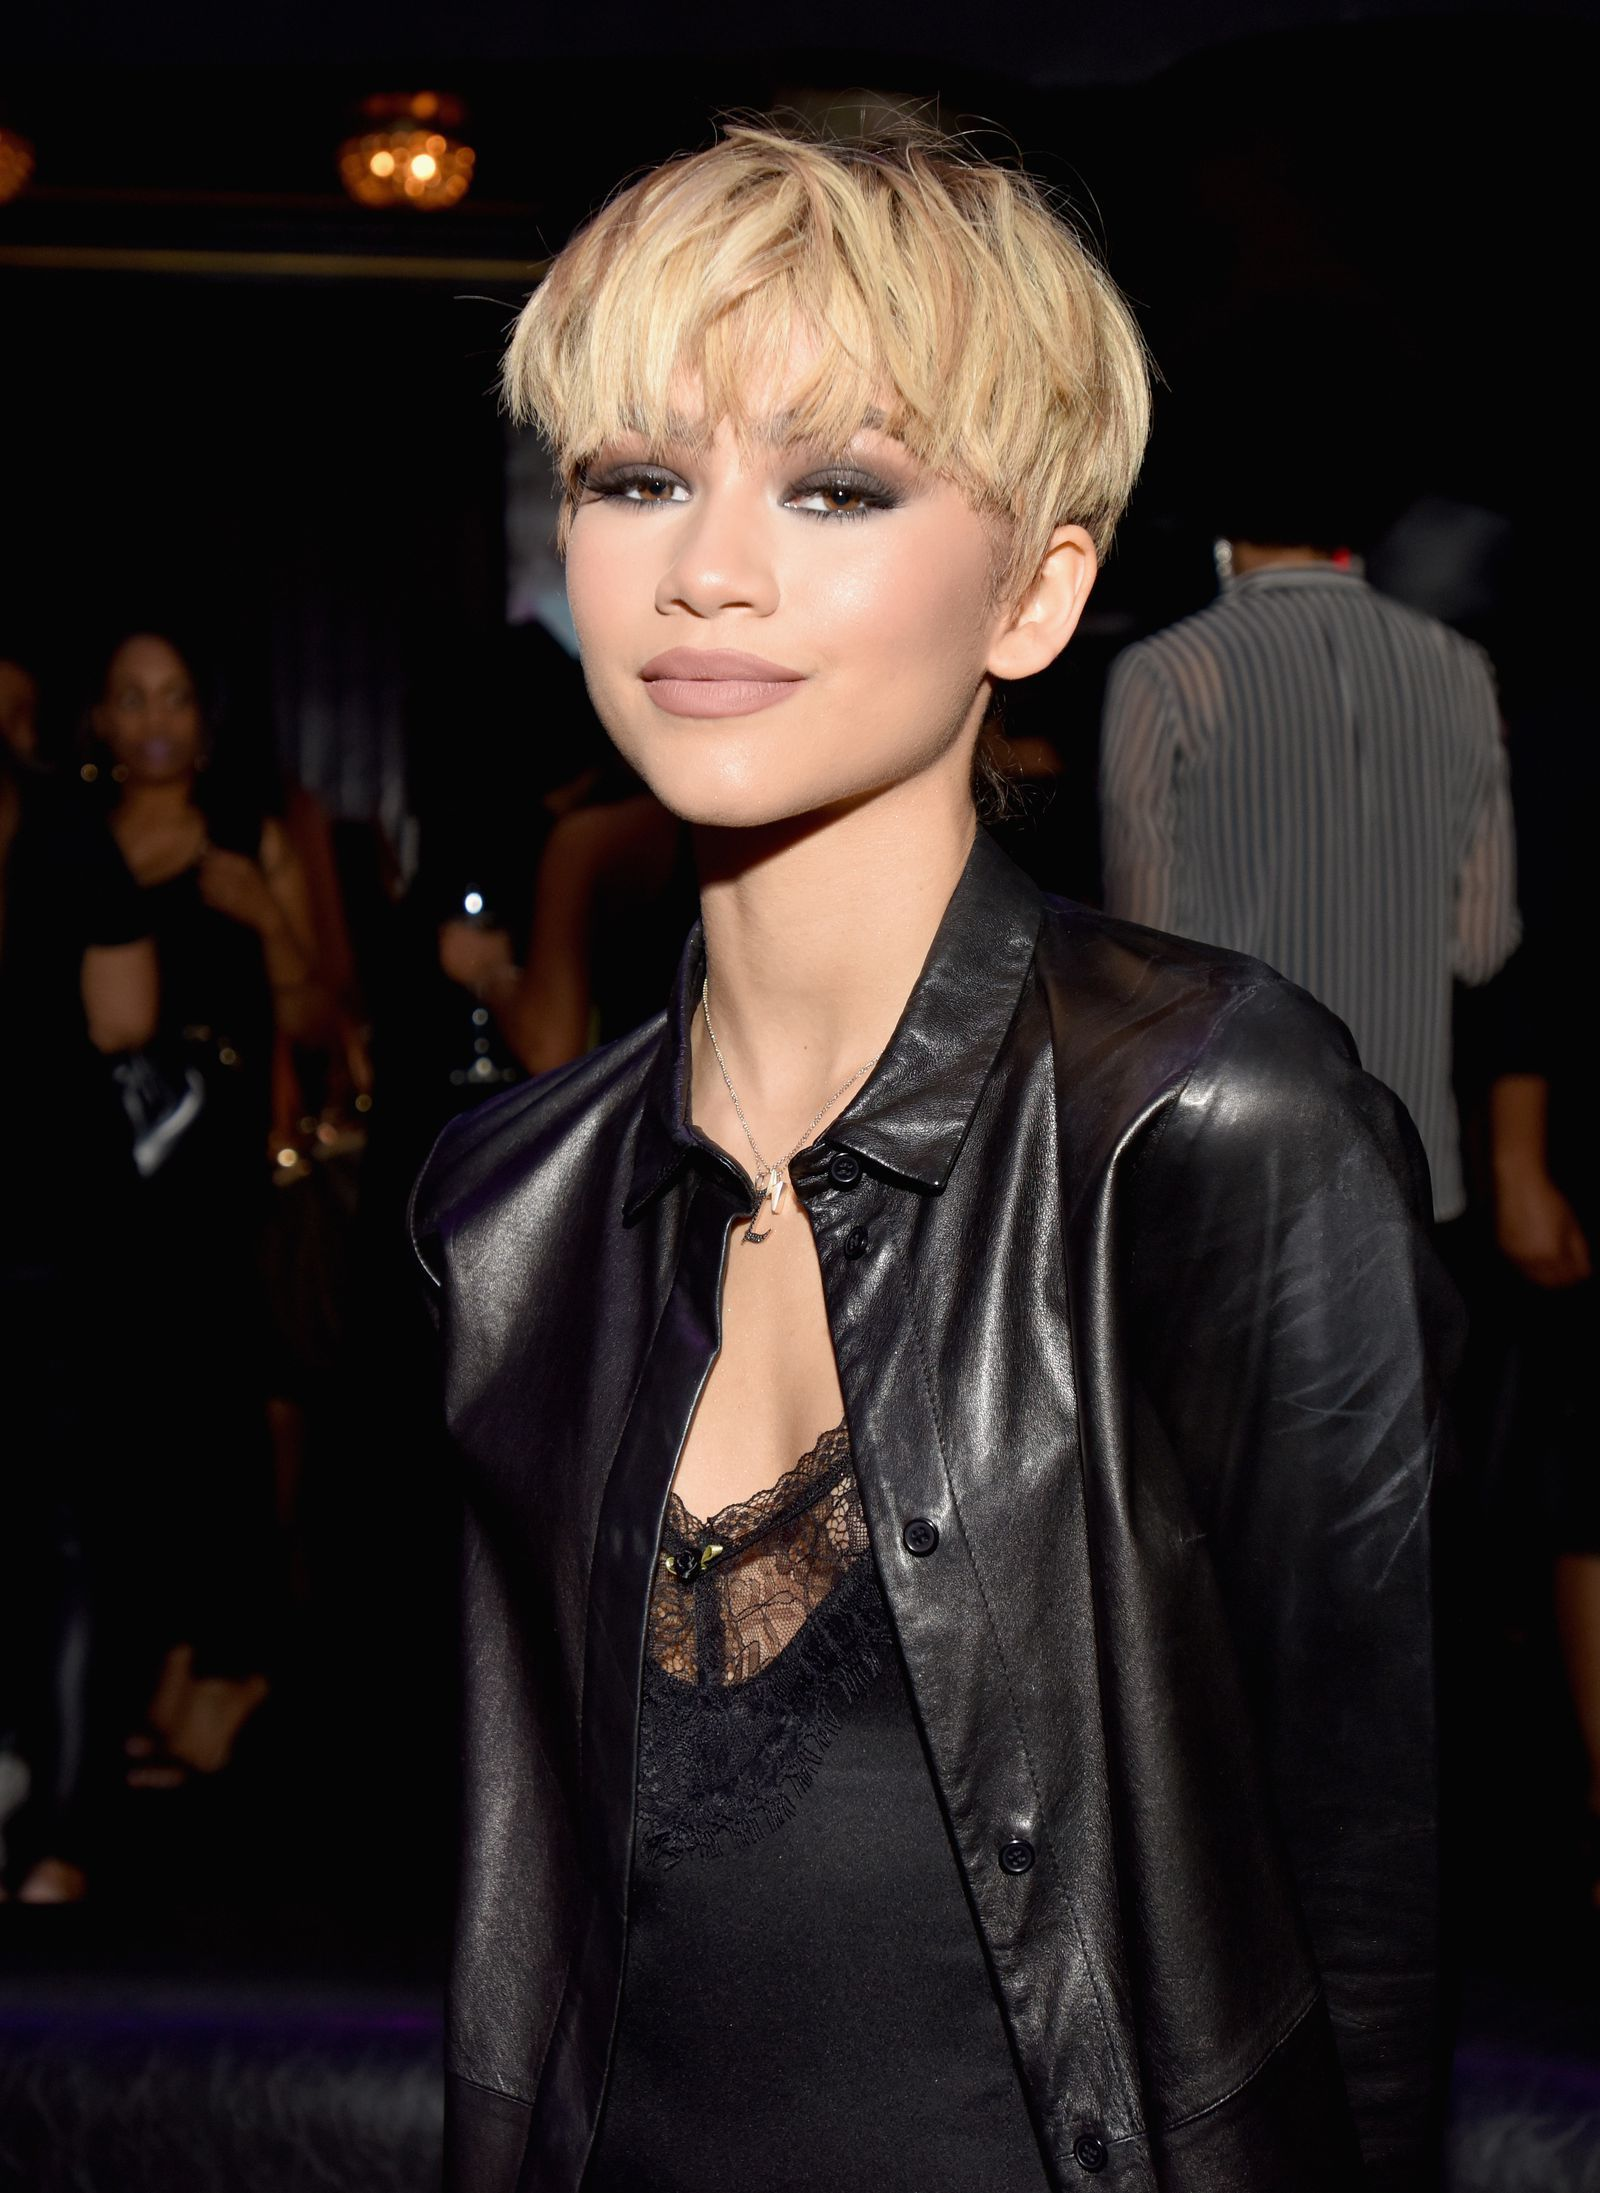 Short and Chic: These Celeb Pixie Cuts Are Serious Hair Goals